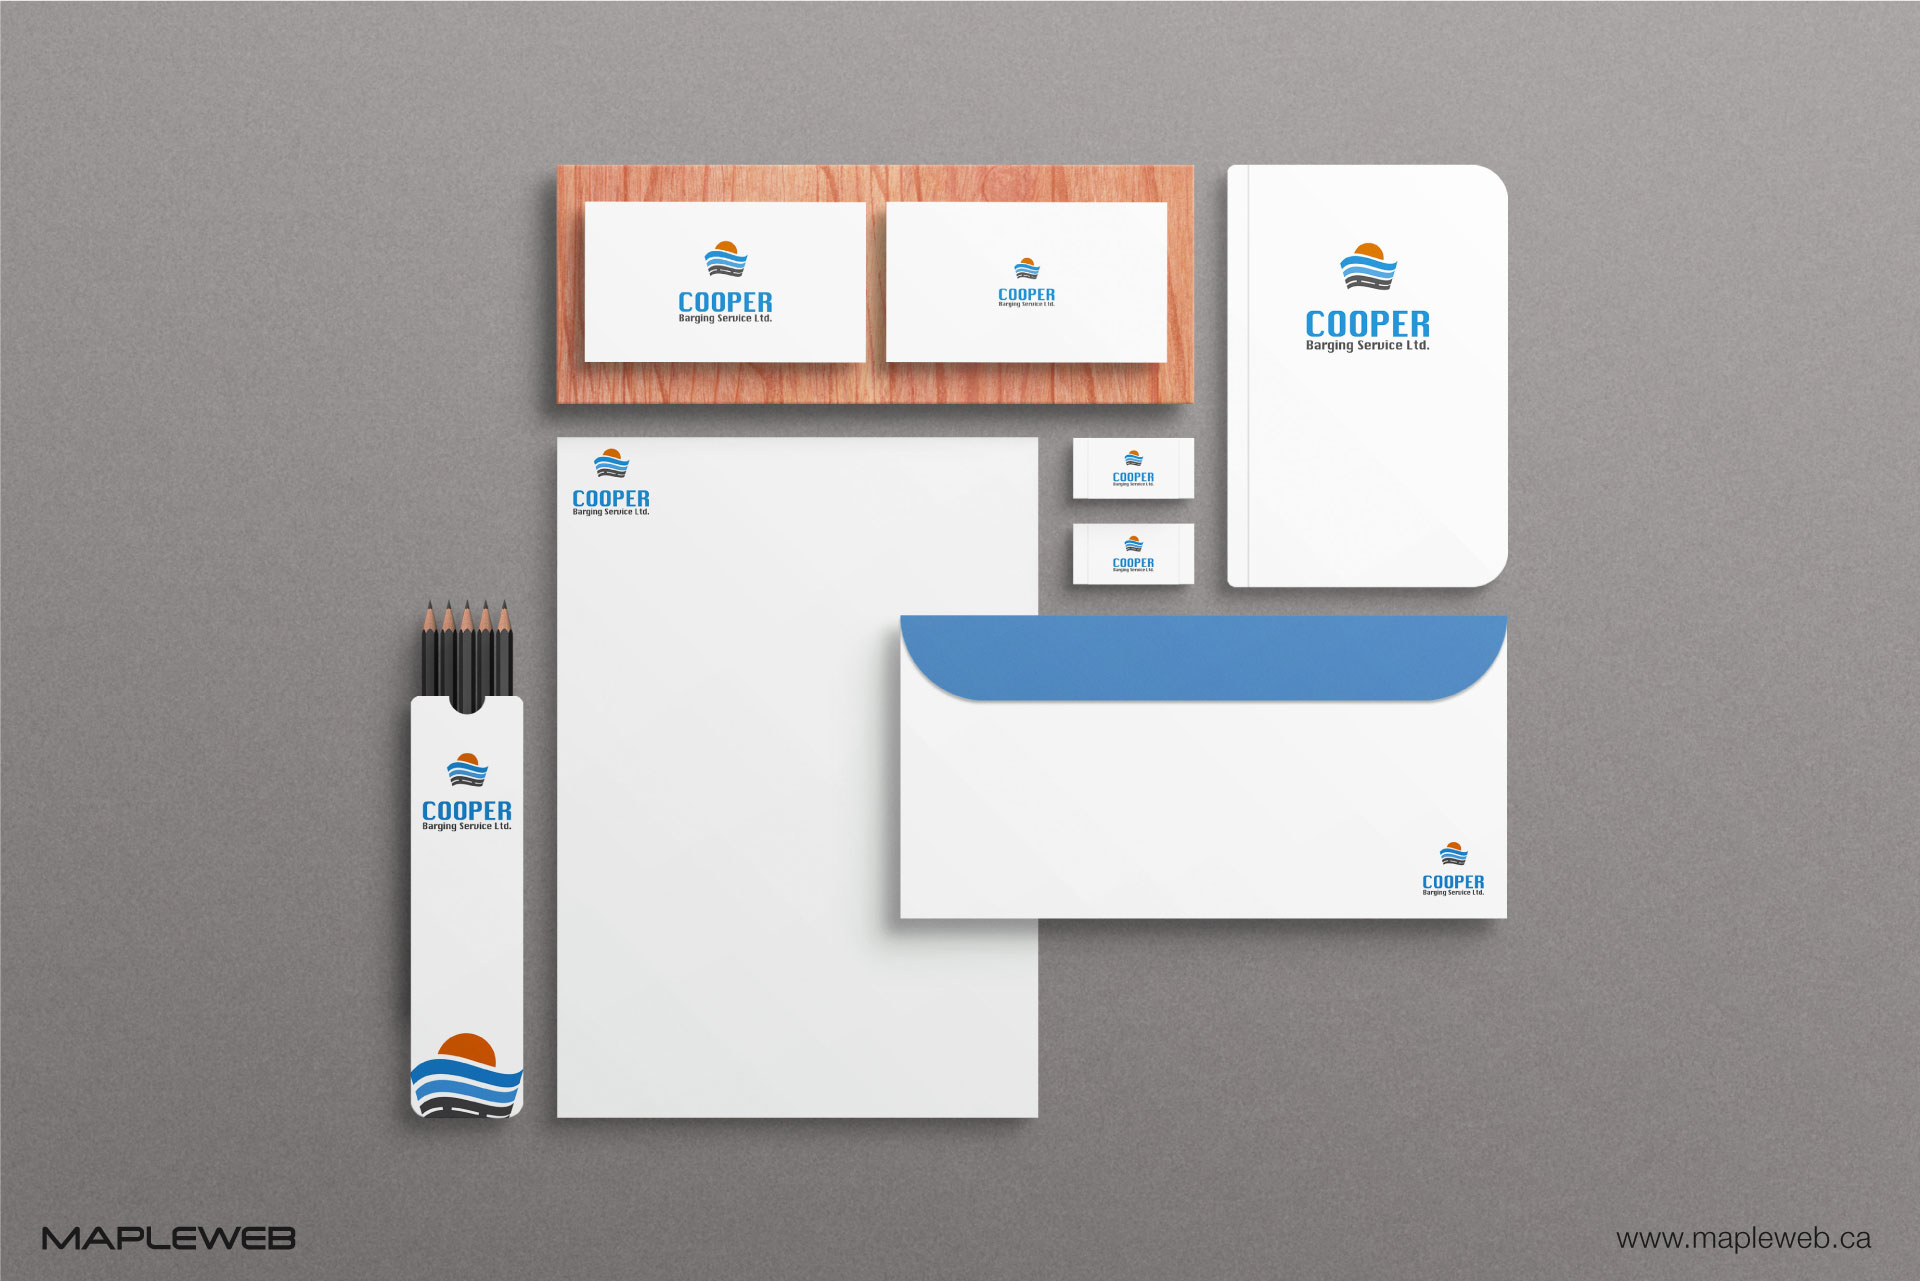 cooper-barging-service-brand-logo-design-by-mapleweb-vancouver-canada-stationery-mock